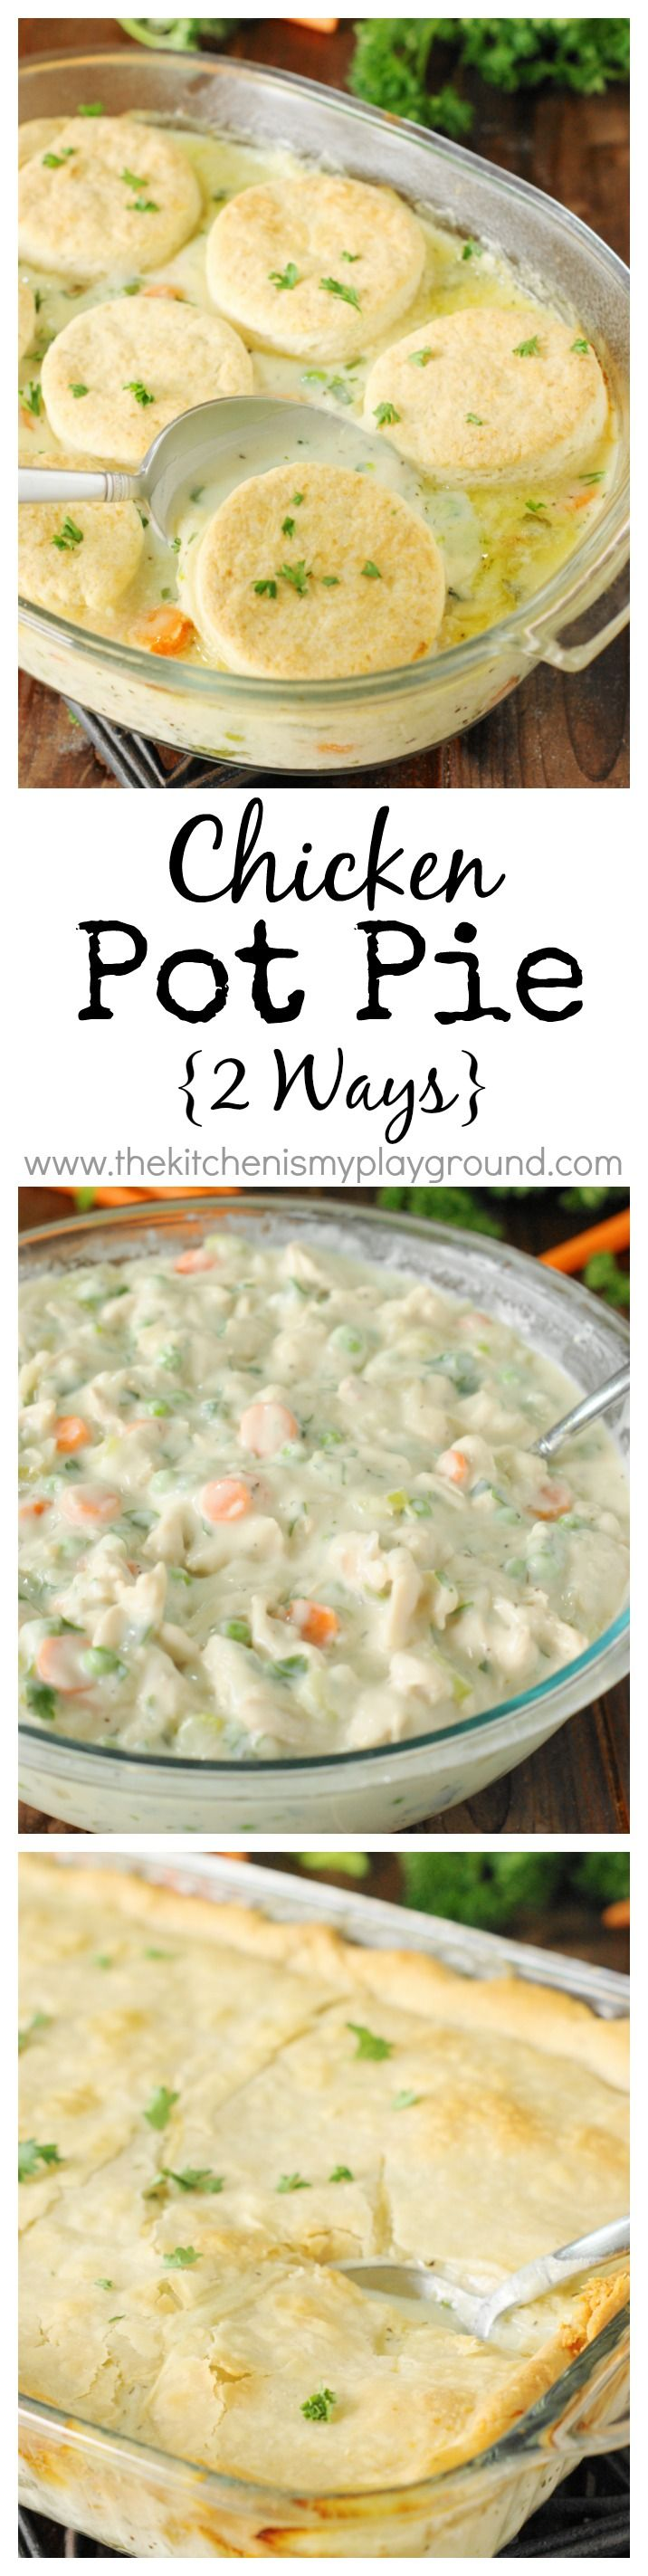 ... Pie Crust or Biscuit Topping} | Chicken Pot Pies, Pot Pies and Pie